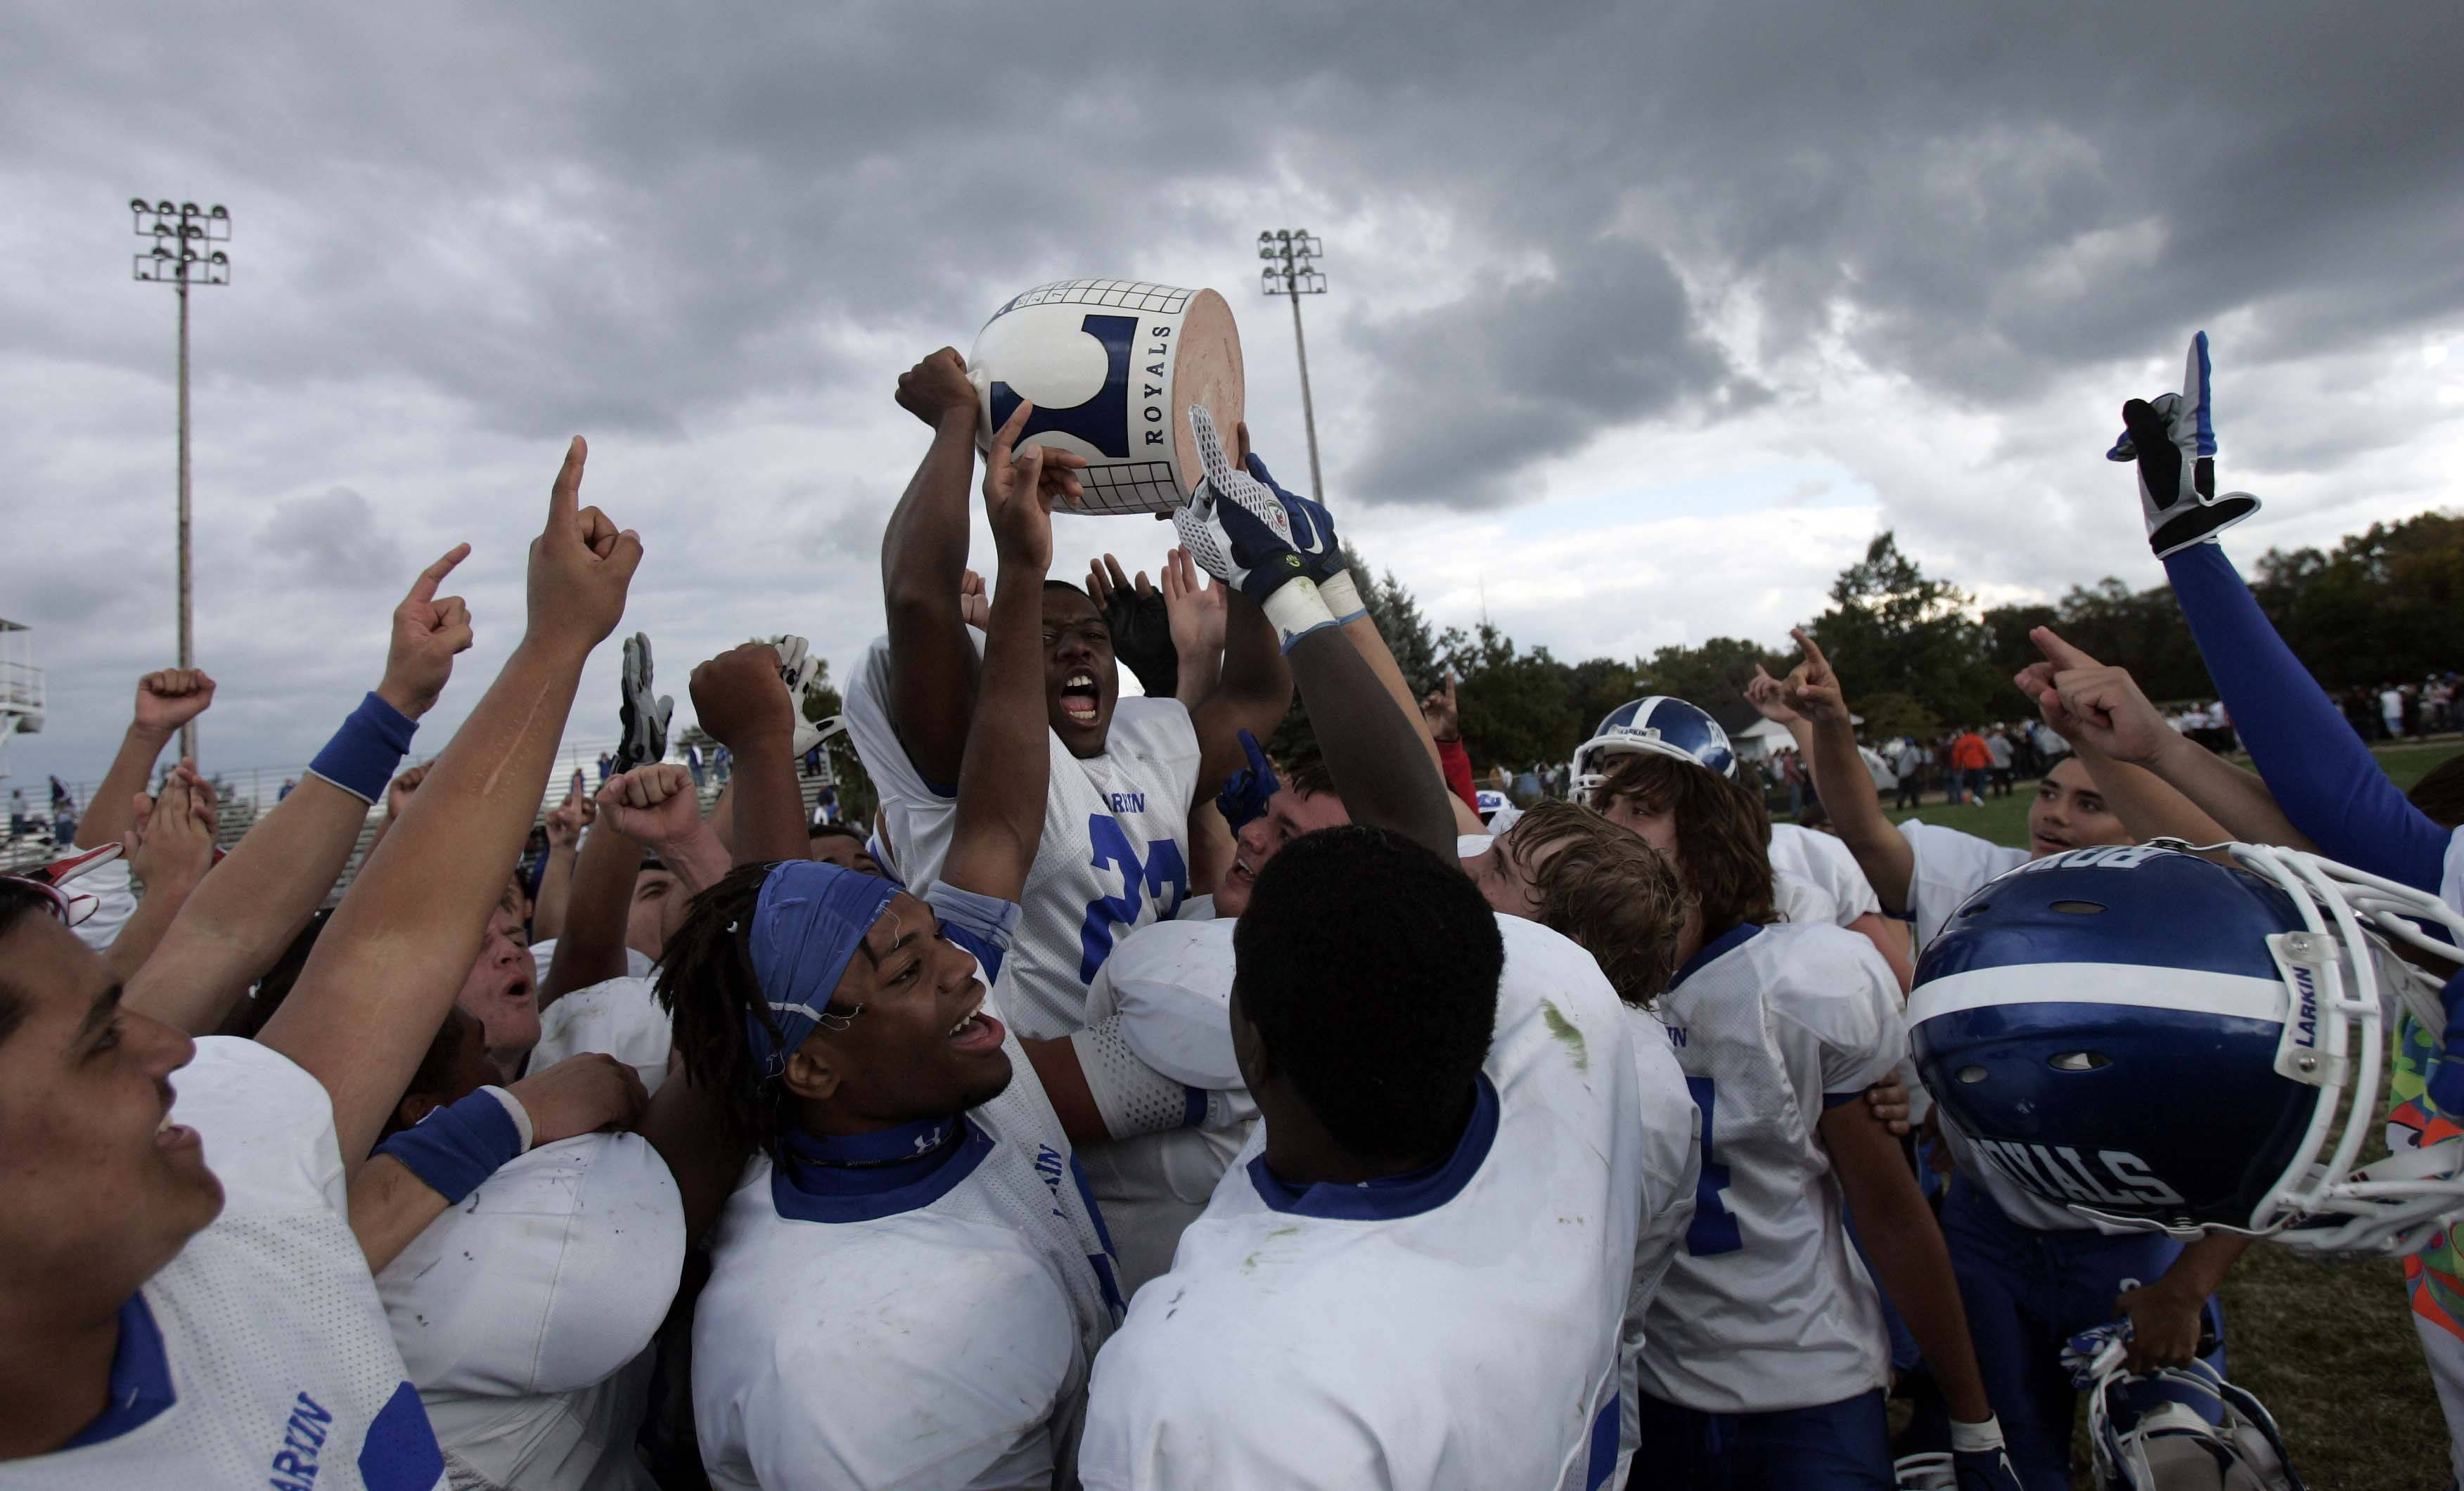 Larkin linebacker Sylvester Smith (22) hoists the Town Jug after the Royal?s victory. Larkin beat Elgin 22 to 21 to win the town jug during the cross town football game Saturday, September 24, 2011 at Memorial Field in Elgin.